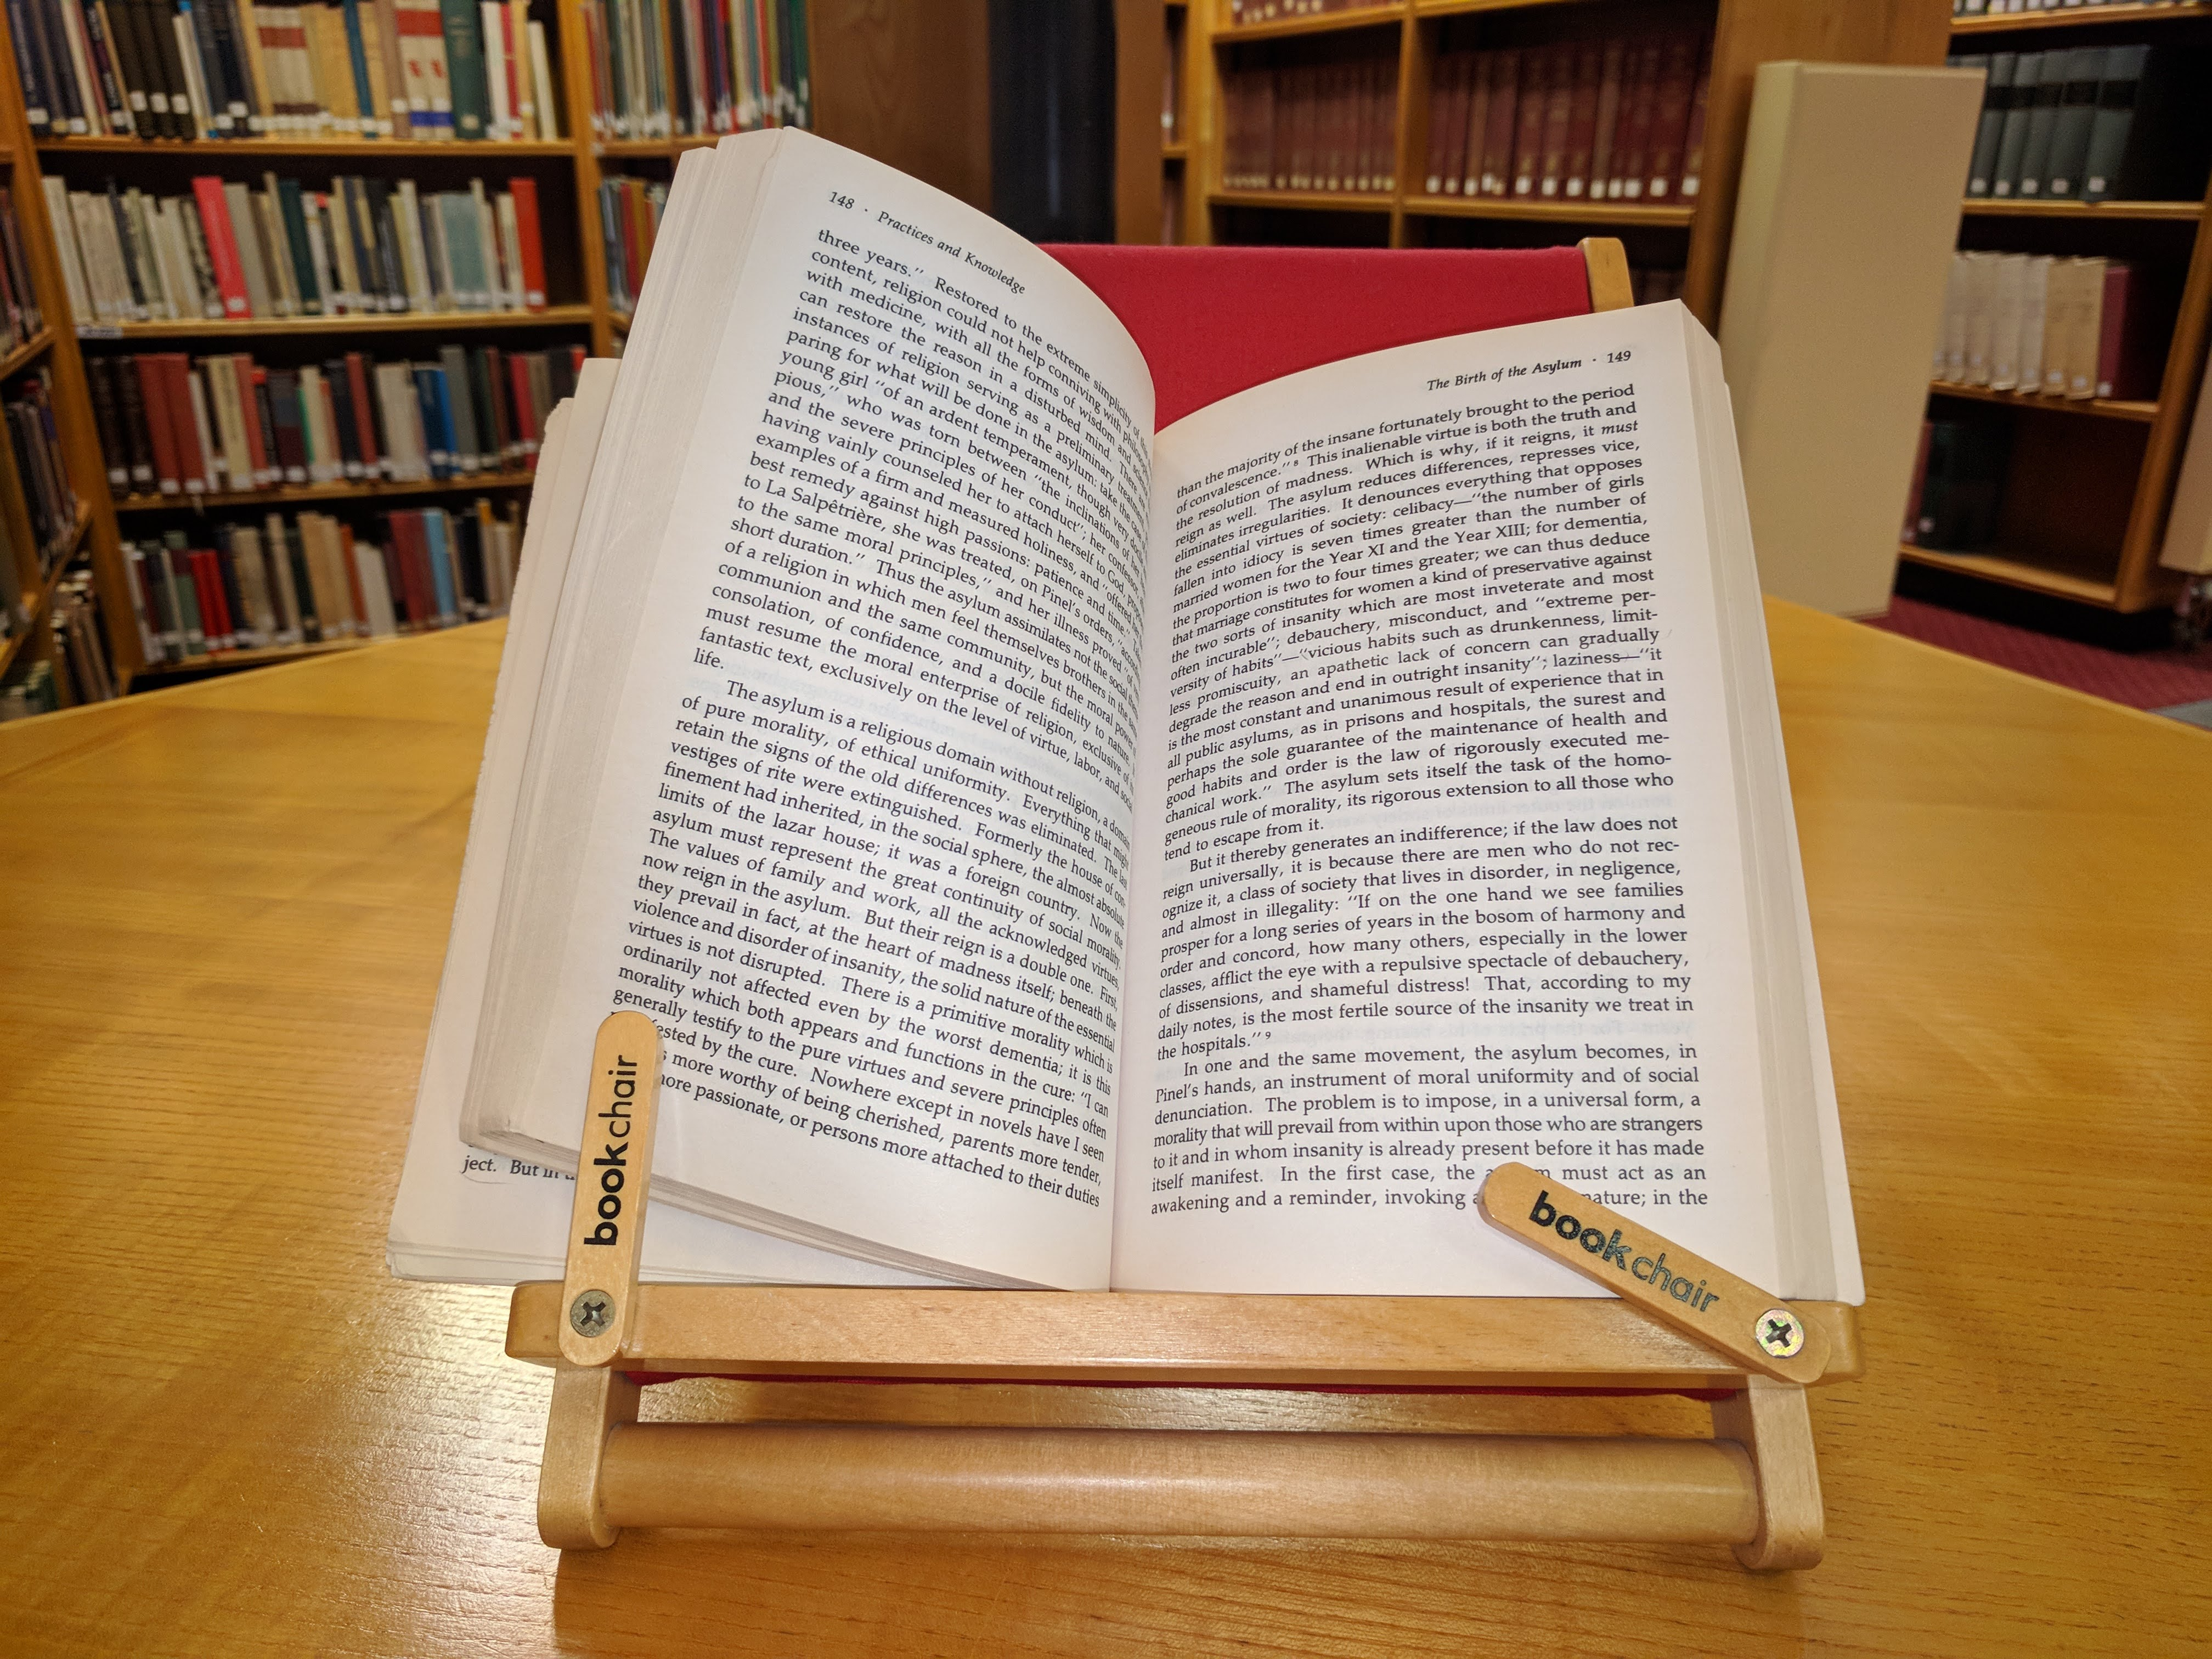 A photograph of a book stand in the Library.